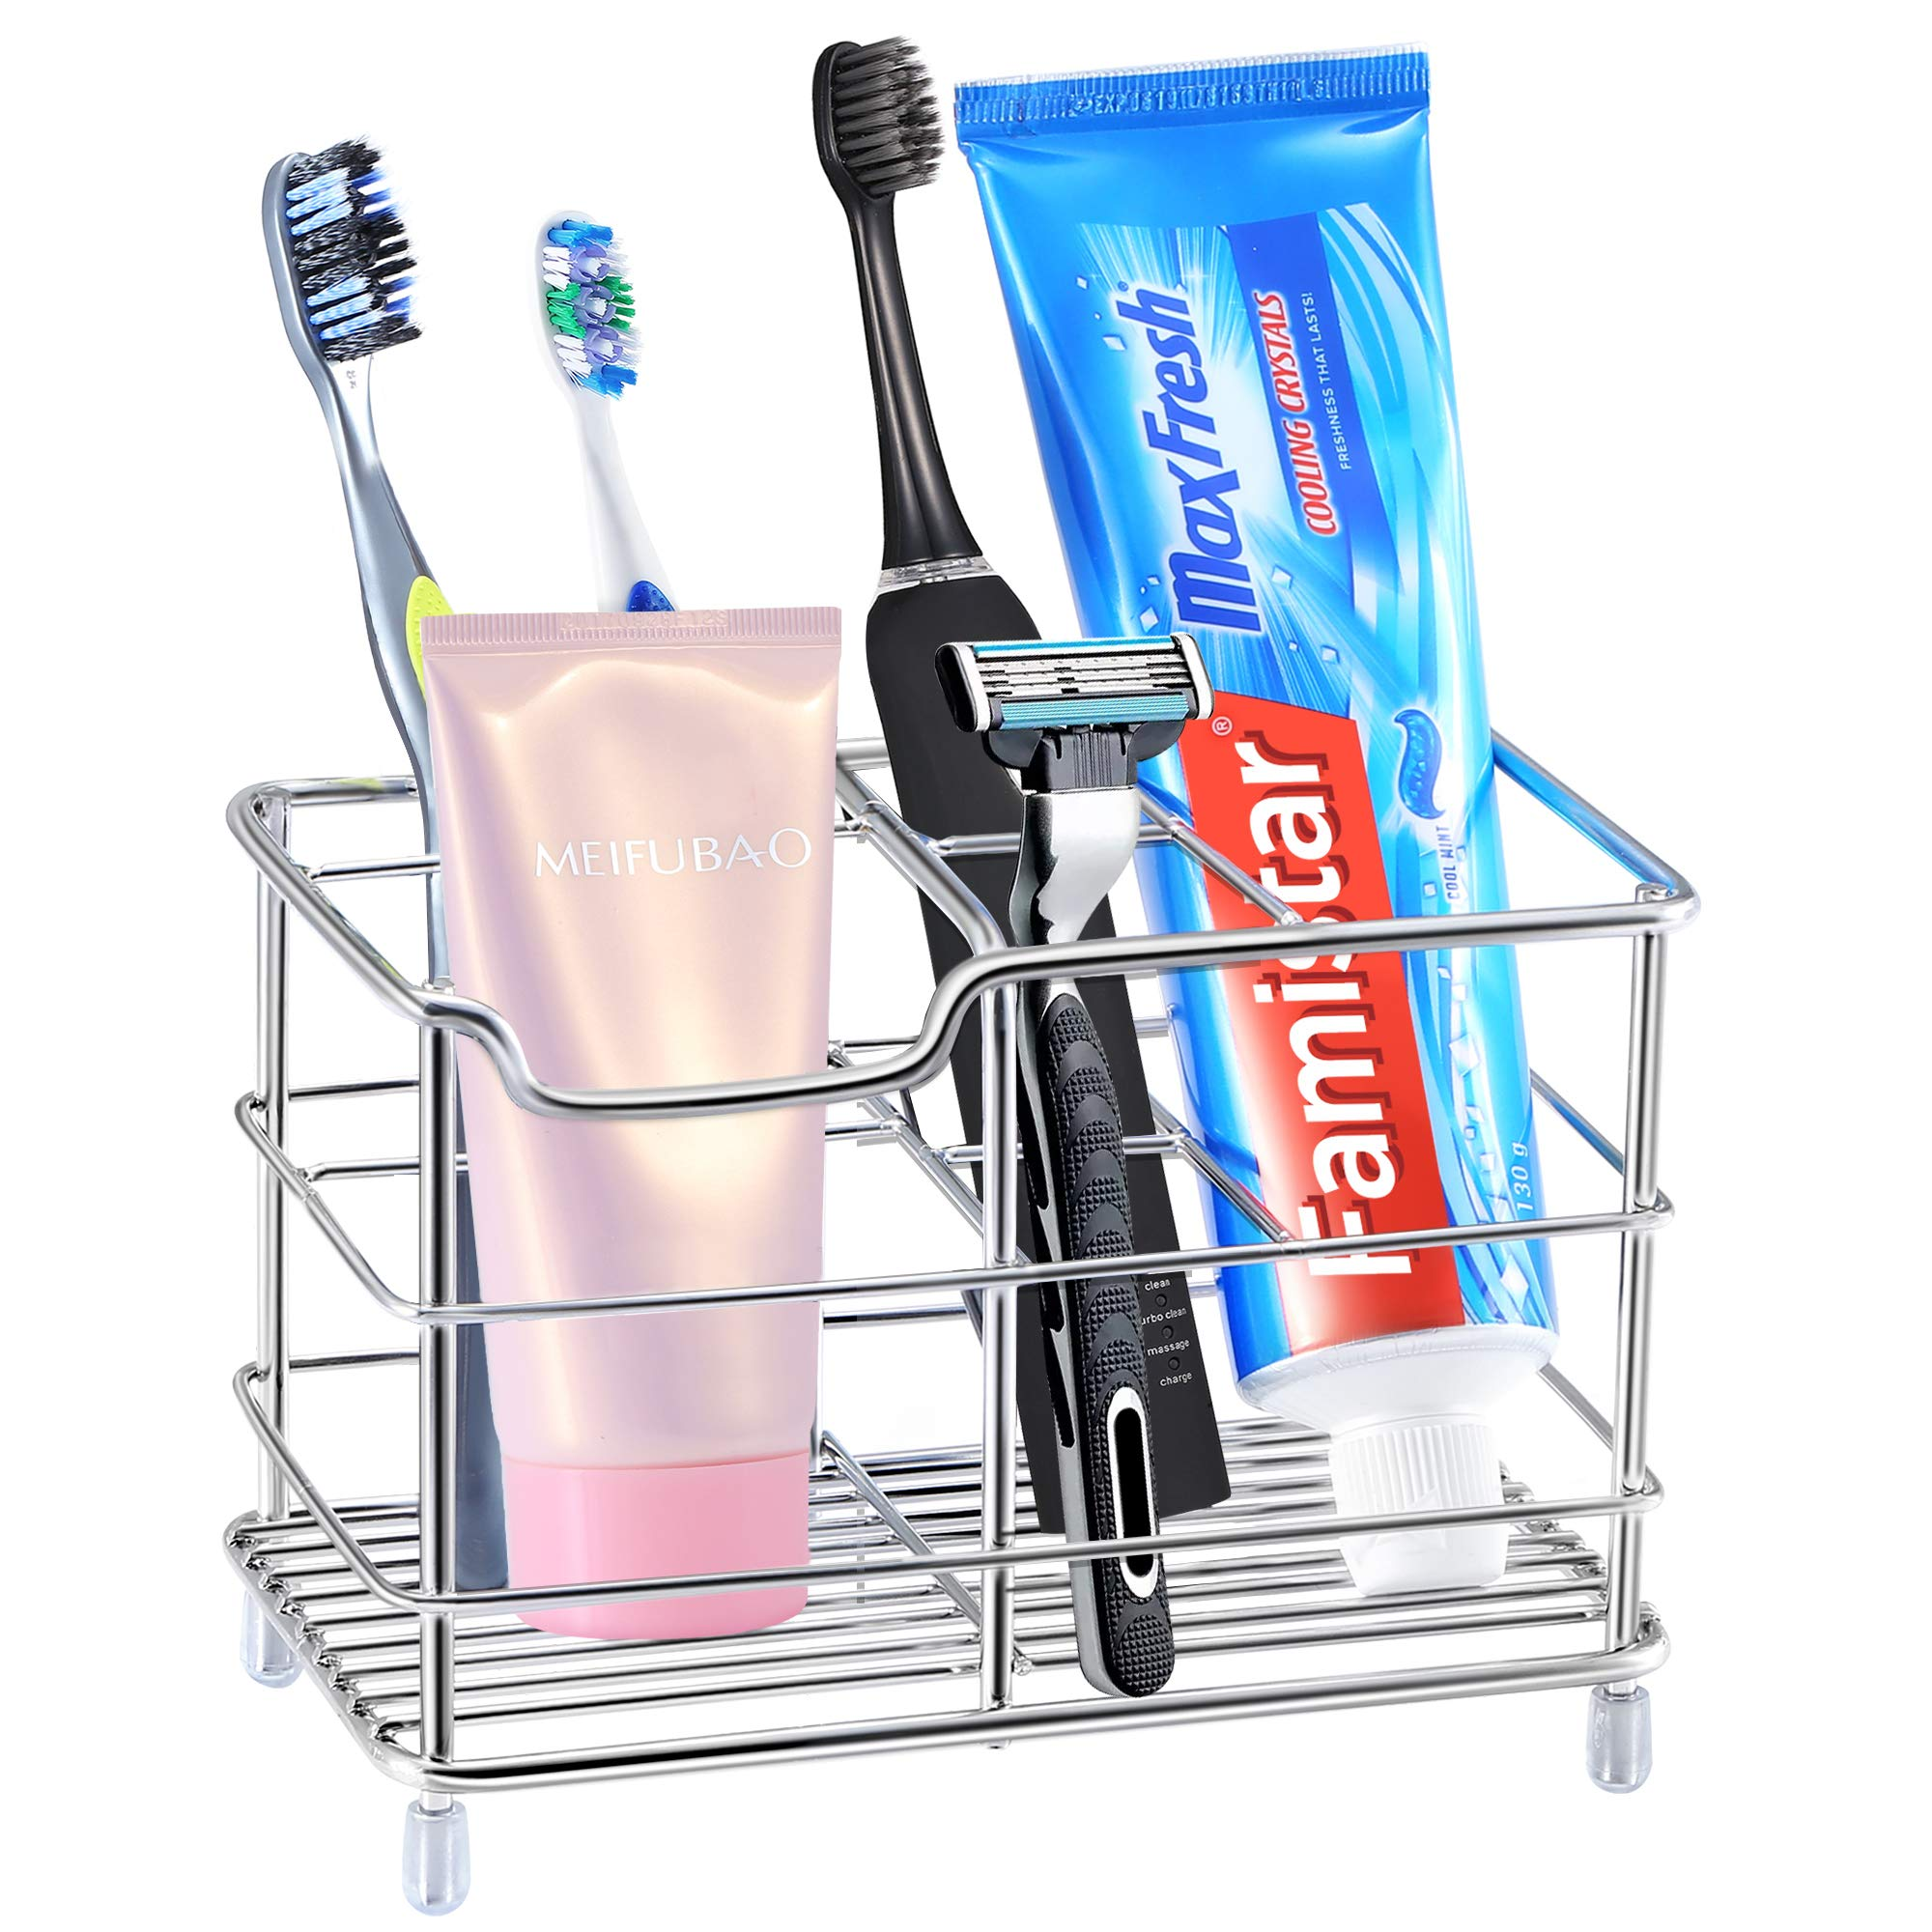 Famistar Electric Toothbrush Holder, Stainless Steel Bathroom Storage Organizer Stand Rack - Multi-Functional 6 Slots for Large Powered Toothbrush, Toothpaste, Cleanser, Comb, Razor by Famistar